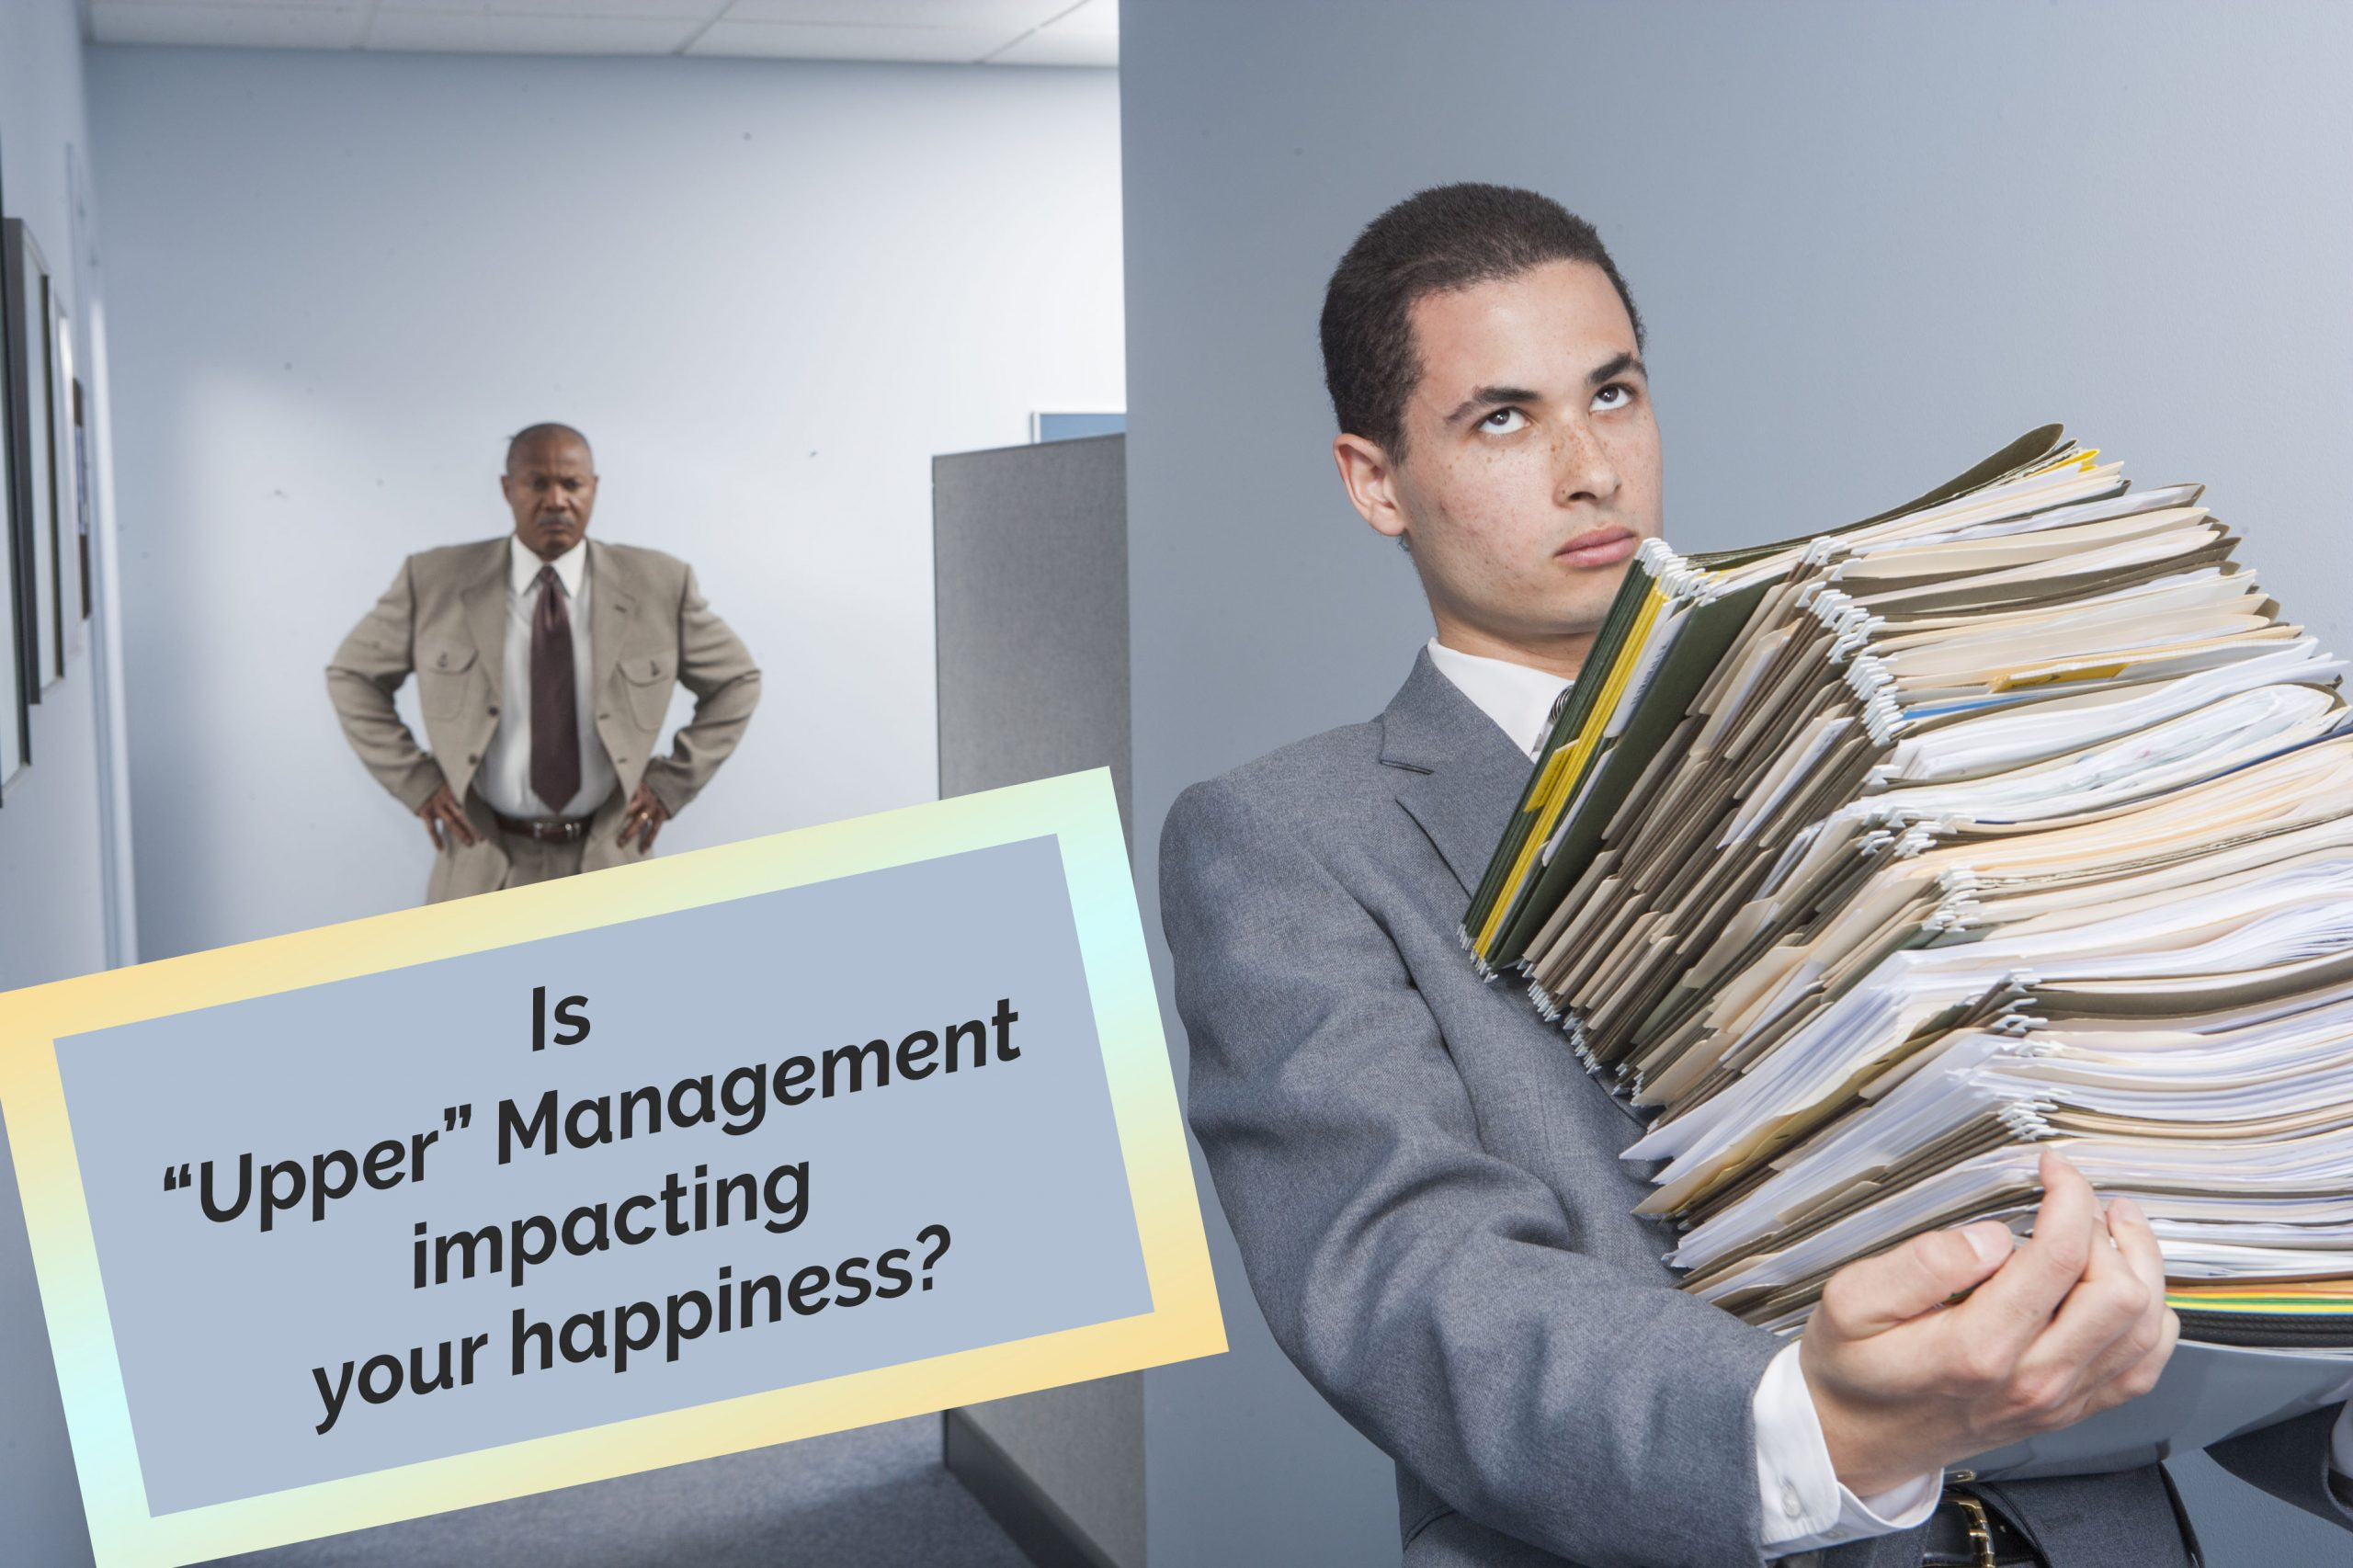 Is 'upper' management impacting your happiness?